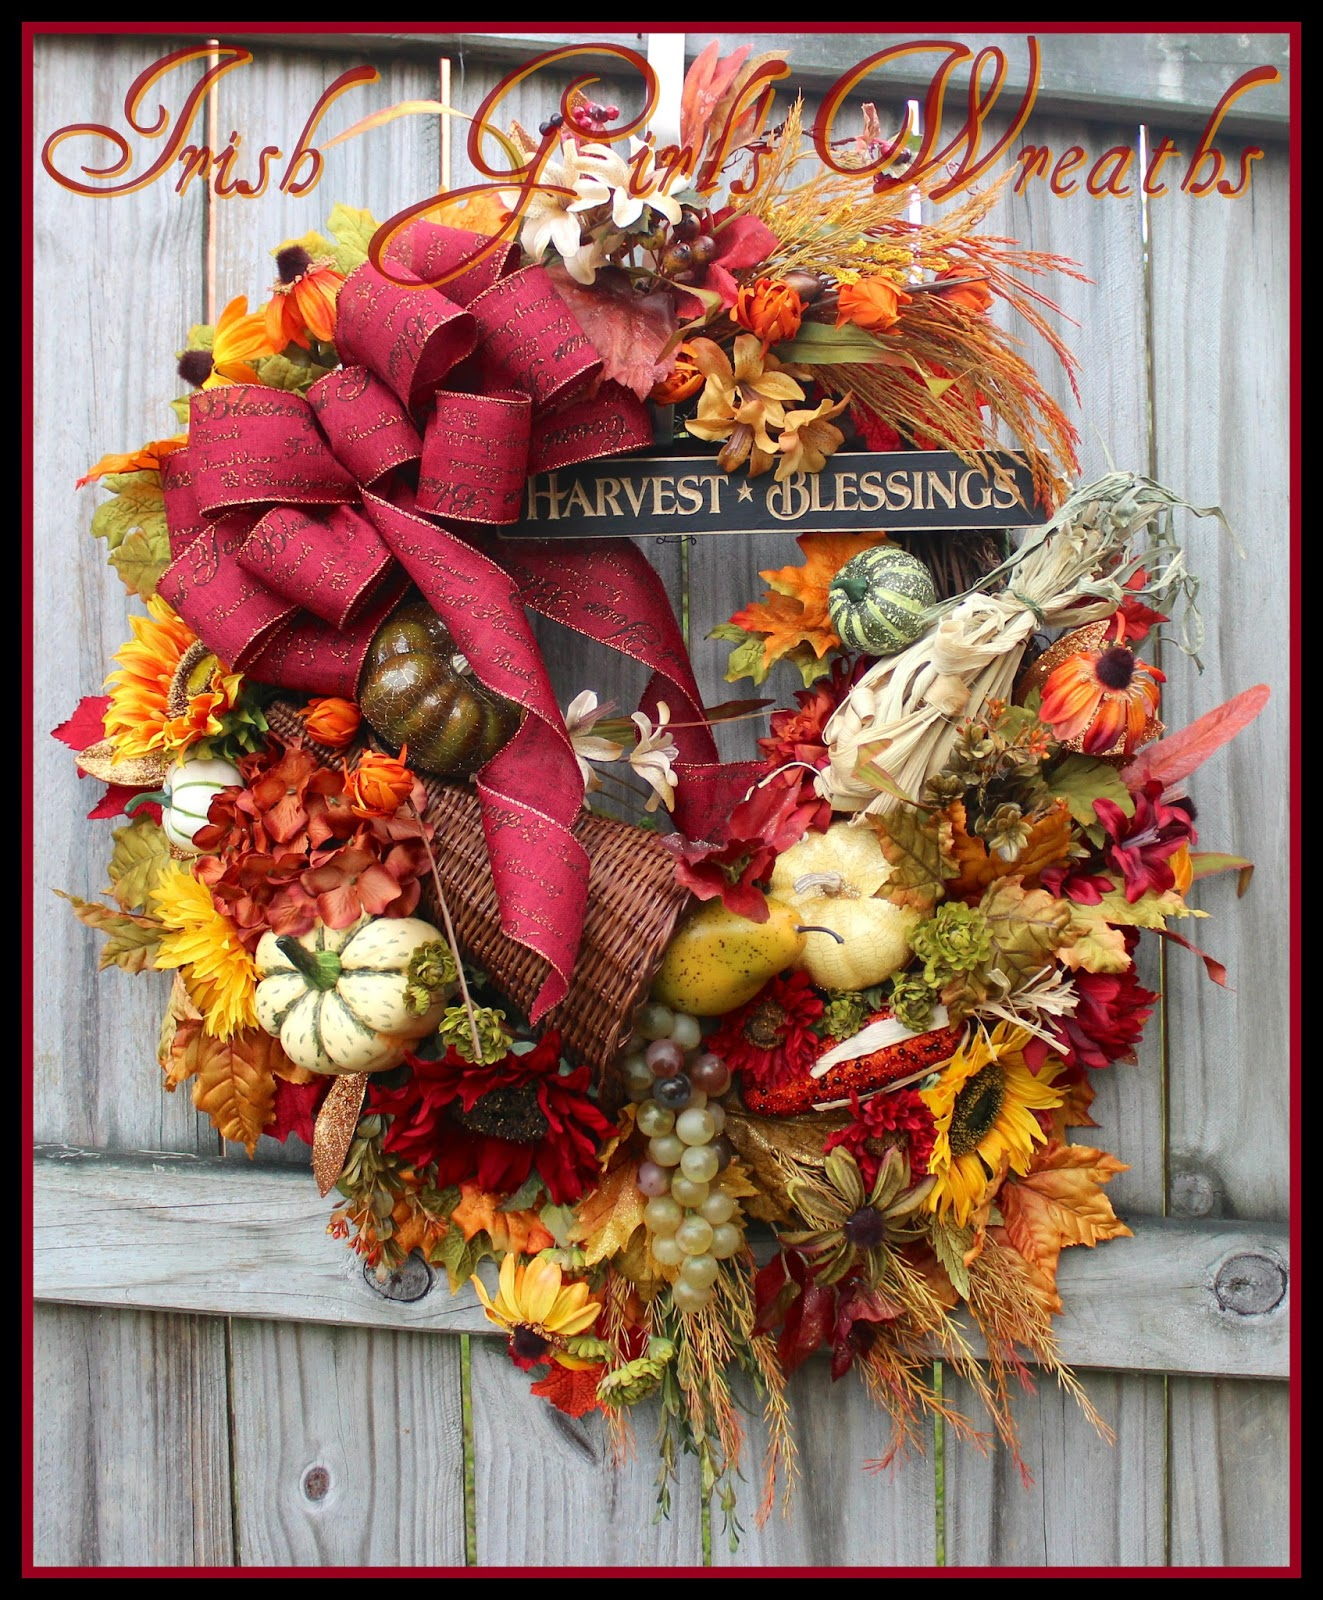 Harvest Blessings Large Autumn Cornucopia Wreath, Thanksgiving, Fall, Grapes, Pumpkins, Sunflowers, red, wheat, Luxury